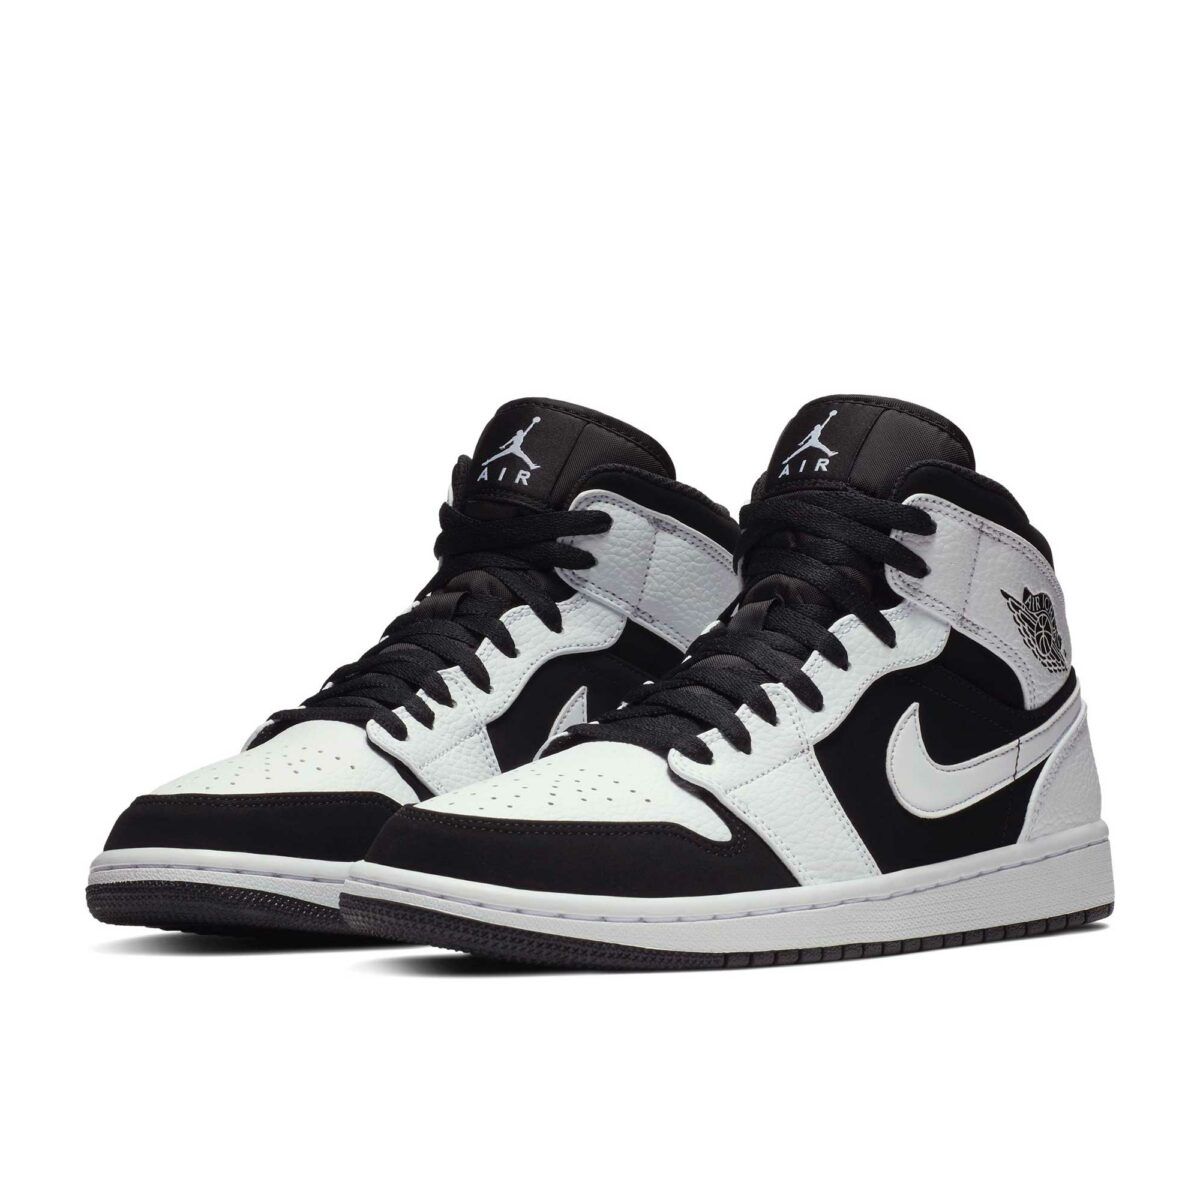 nike air jordan mid white black 554724_113 купить